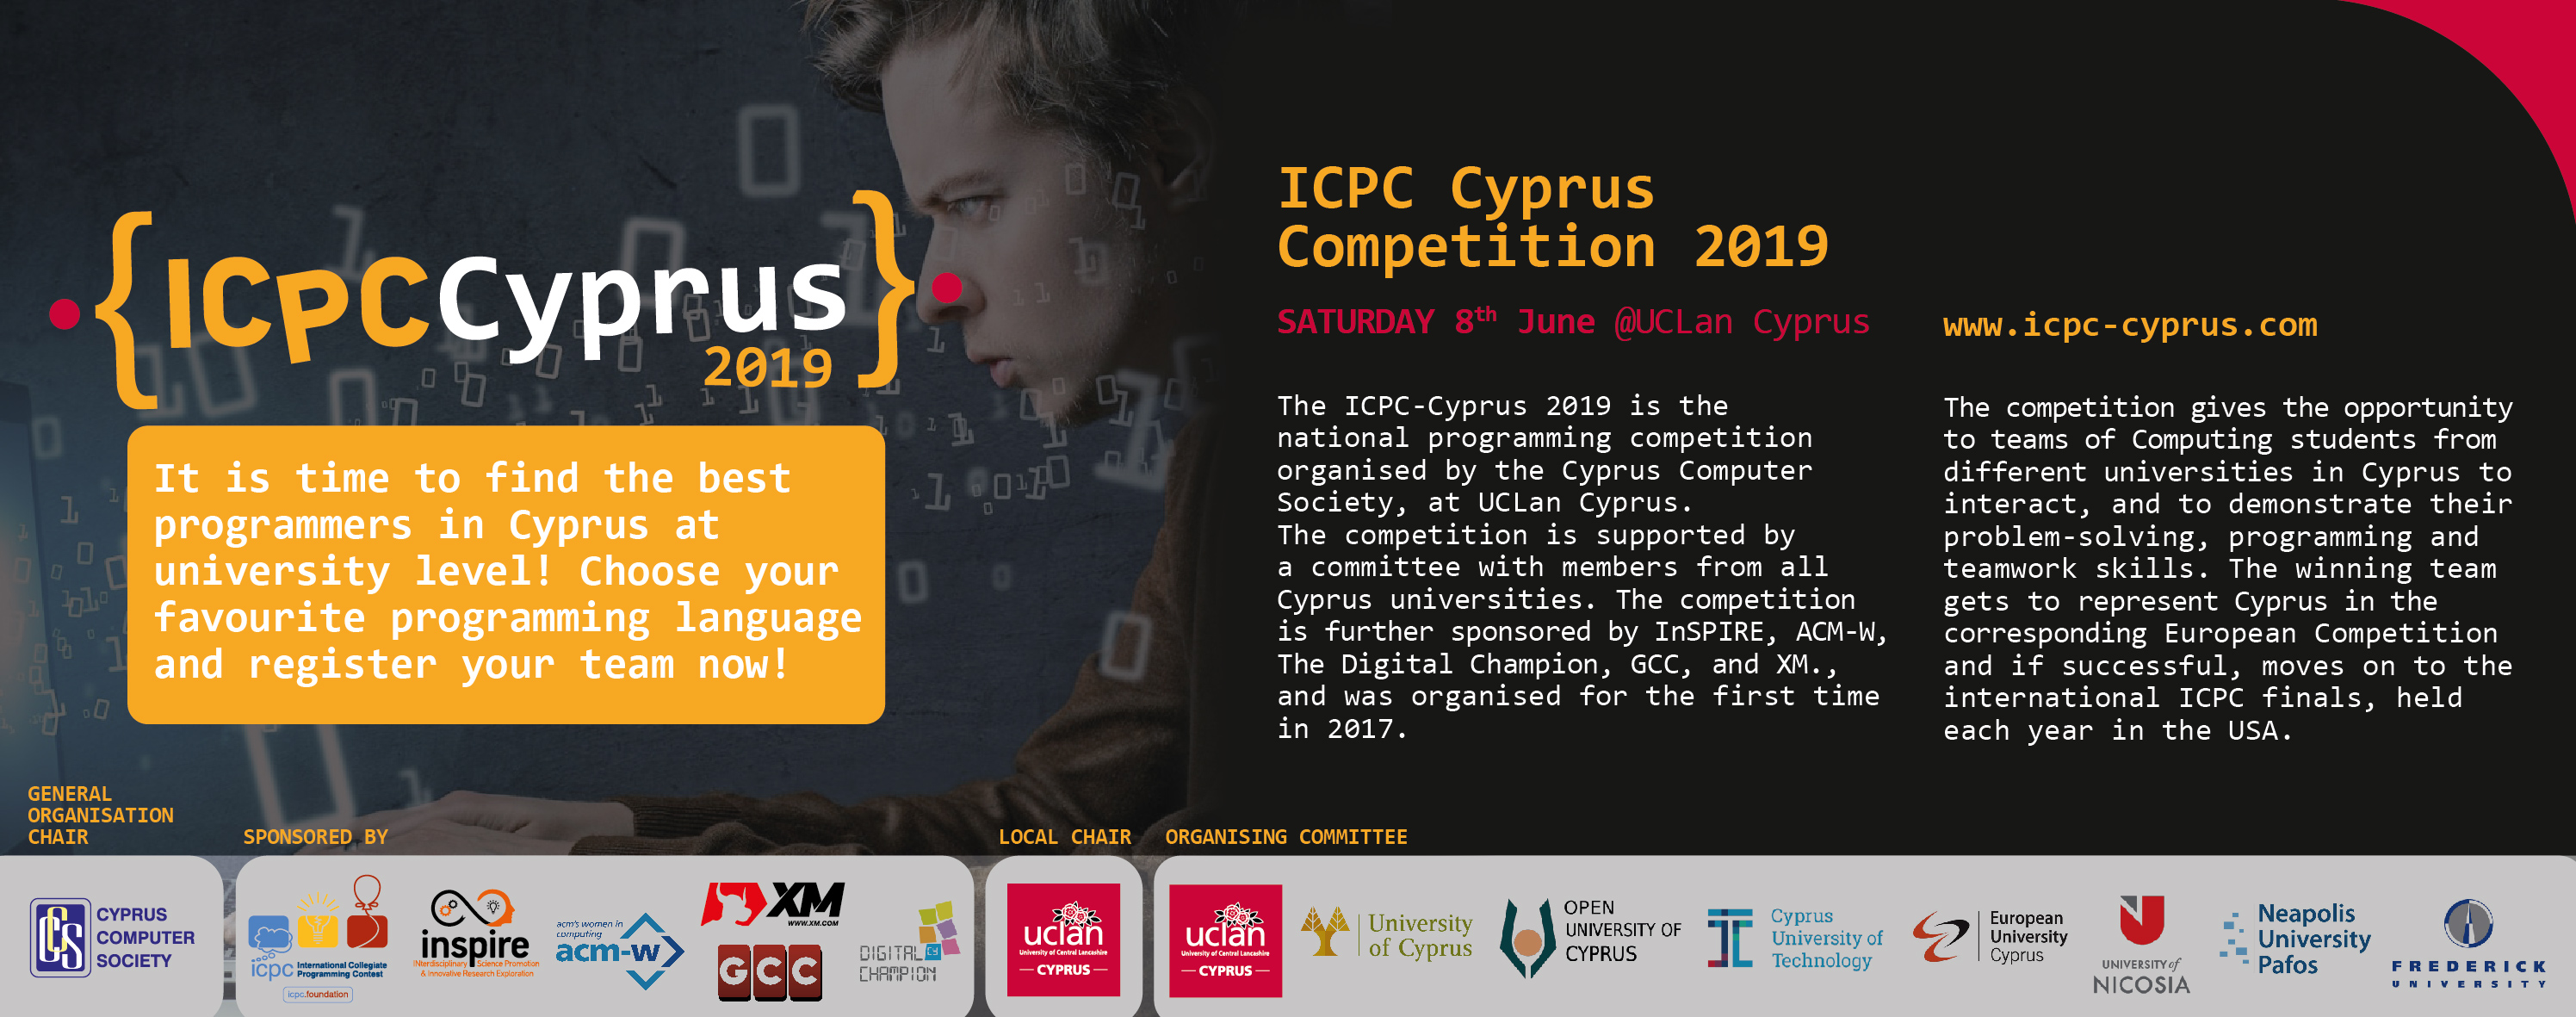 June 8, ACM Inter-Collegiate Programming Competition (ICPC) Cyprus 2019, UCLan